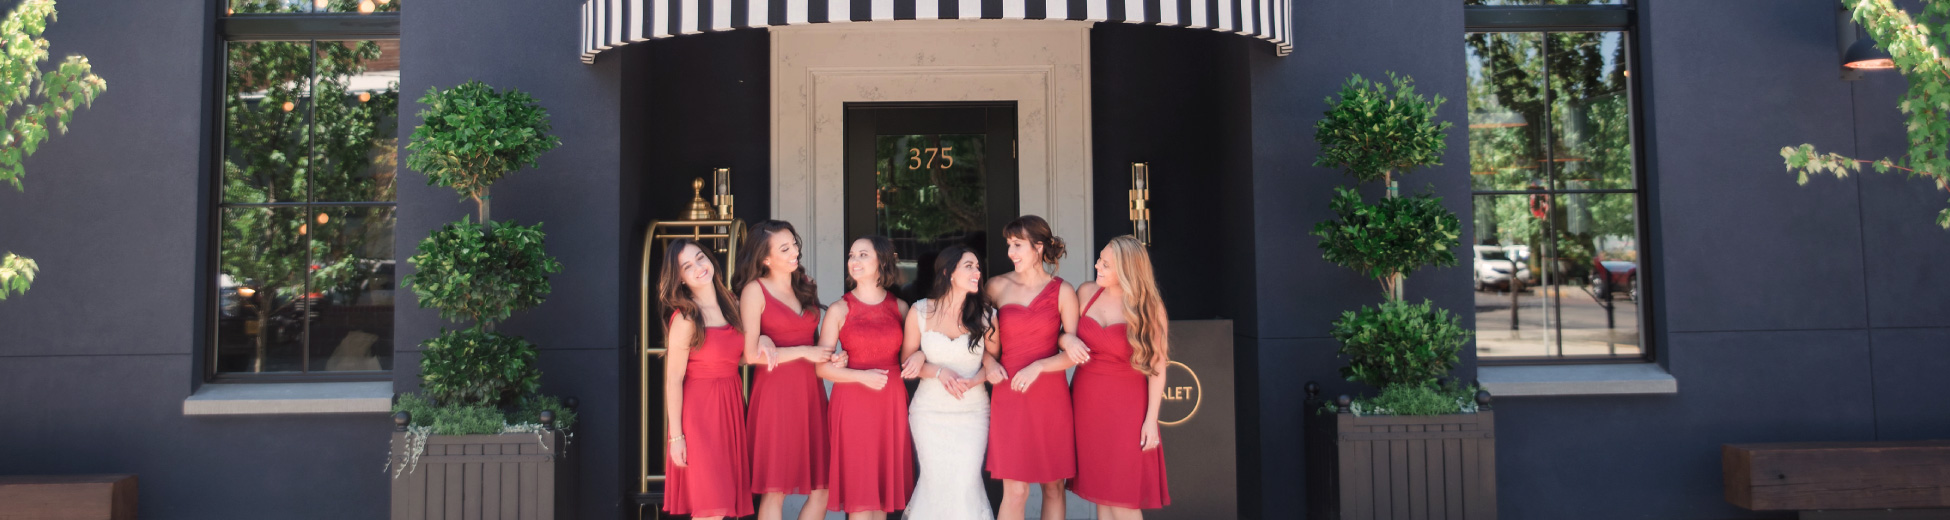 The bride and her bridemaids in front of Atticus Hotel in McMinnville, Oregon